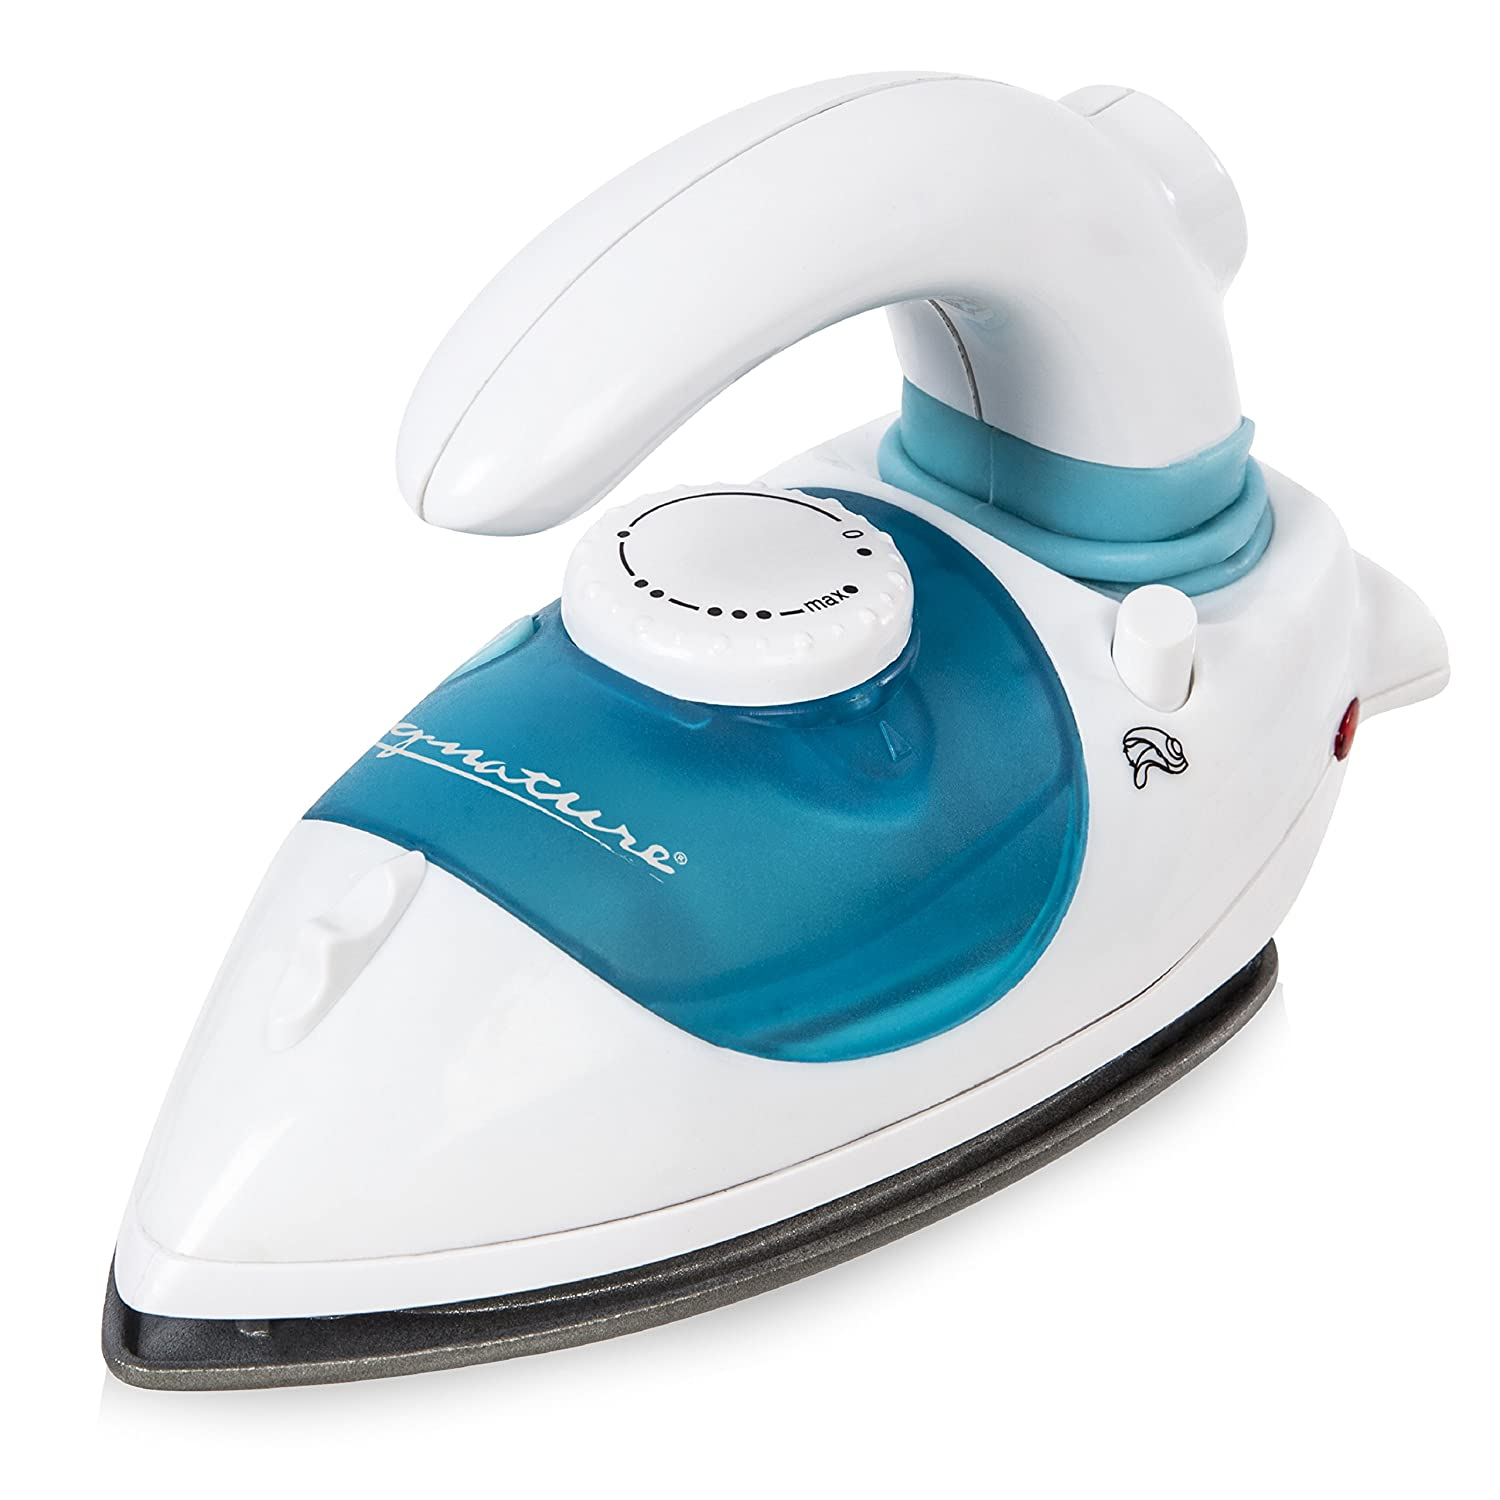 Signature S22003 Travel Steam Iron with Non-Stick Soleplate, 0.1 Litre, 800 W, White